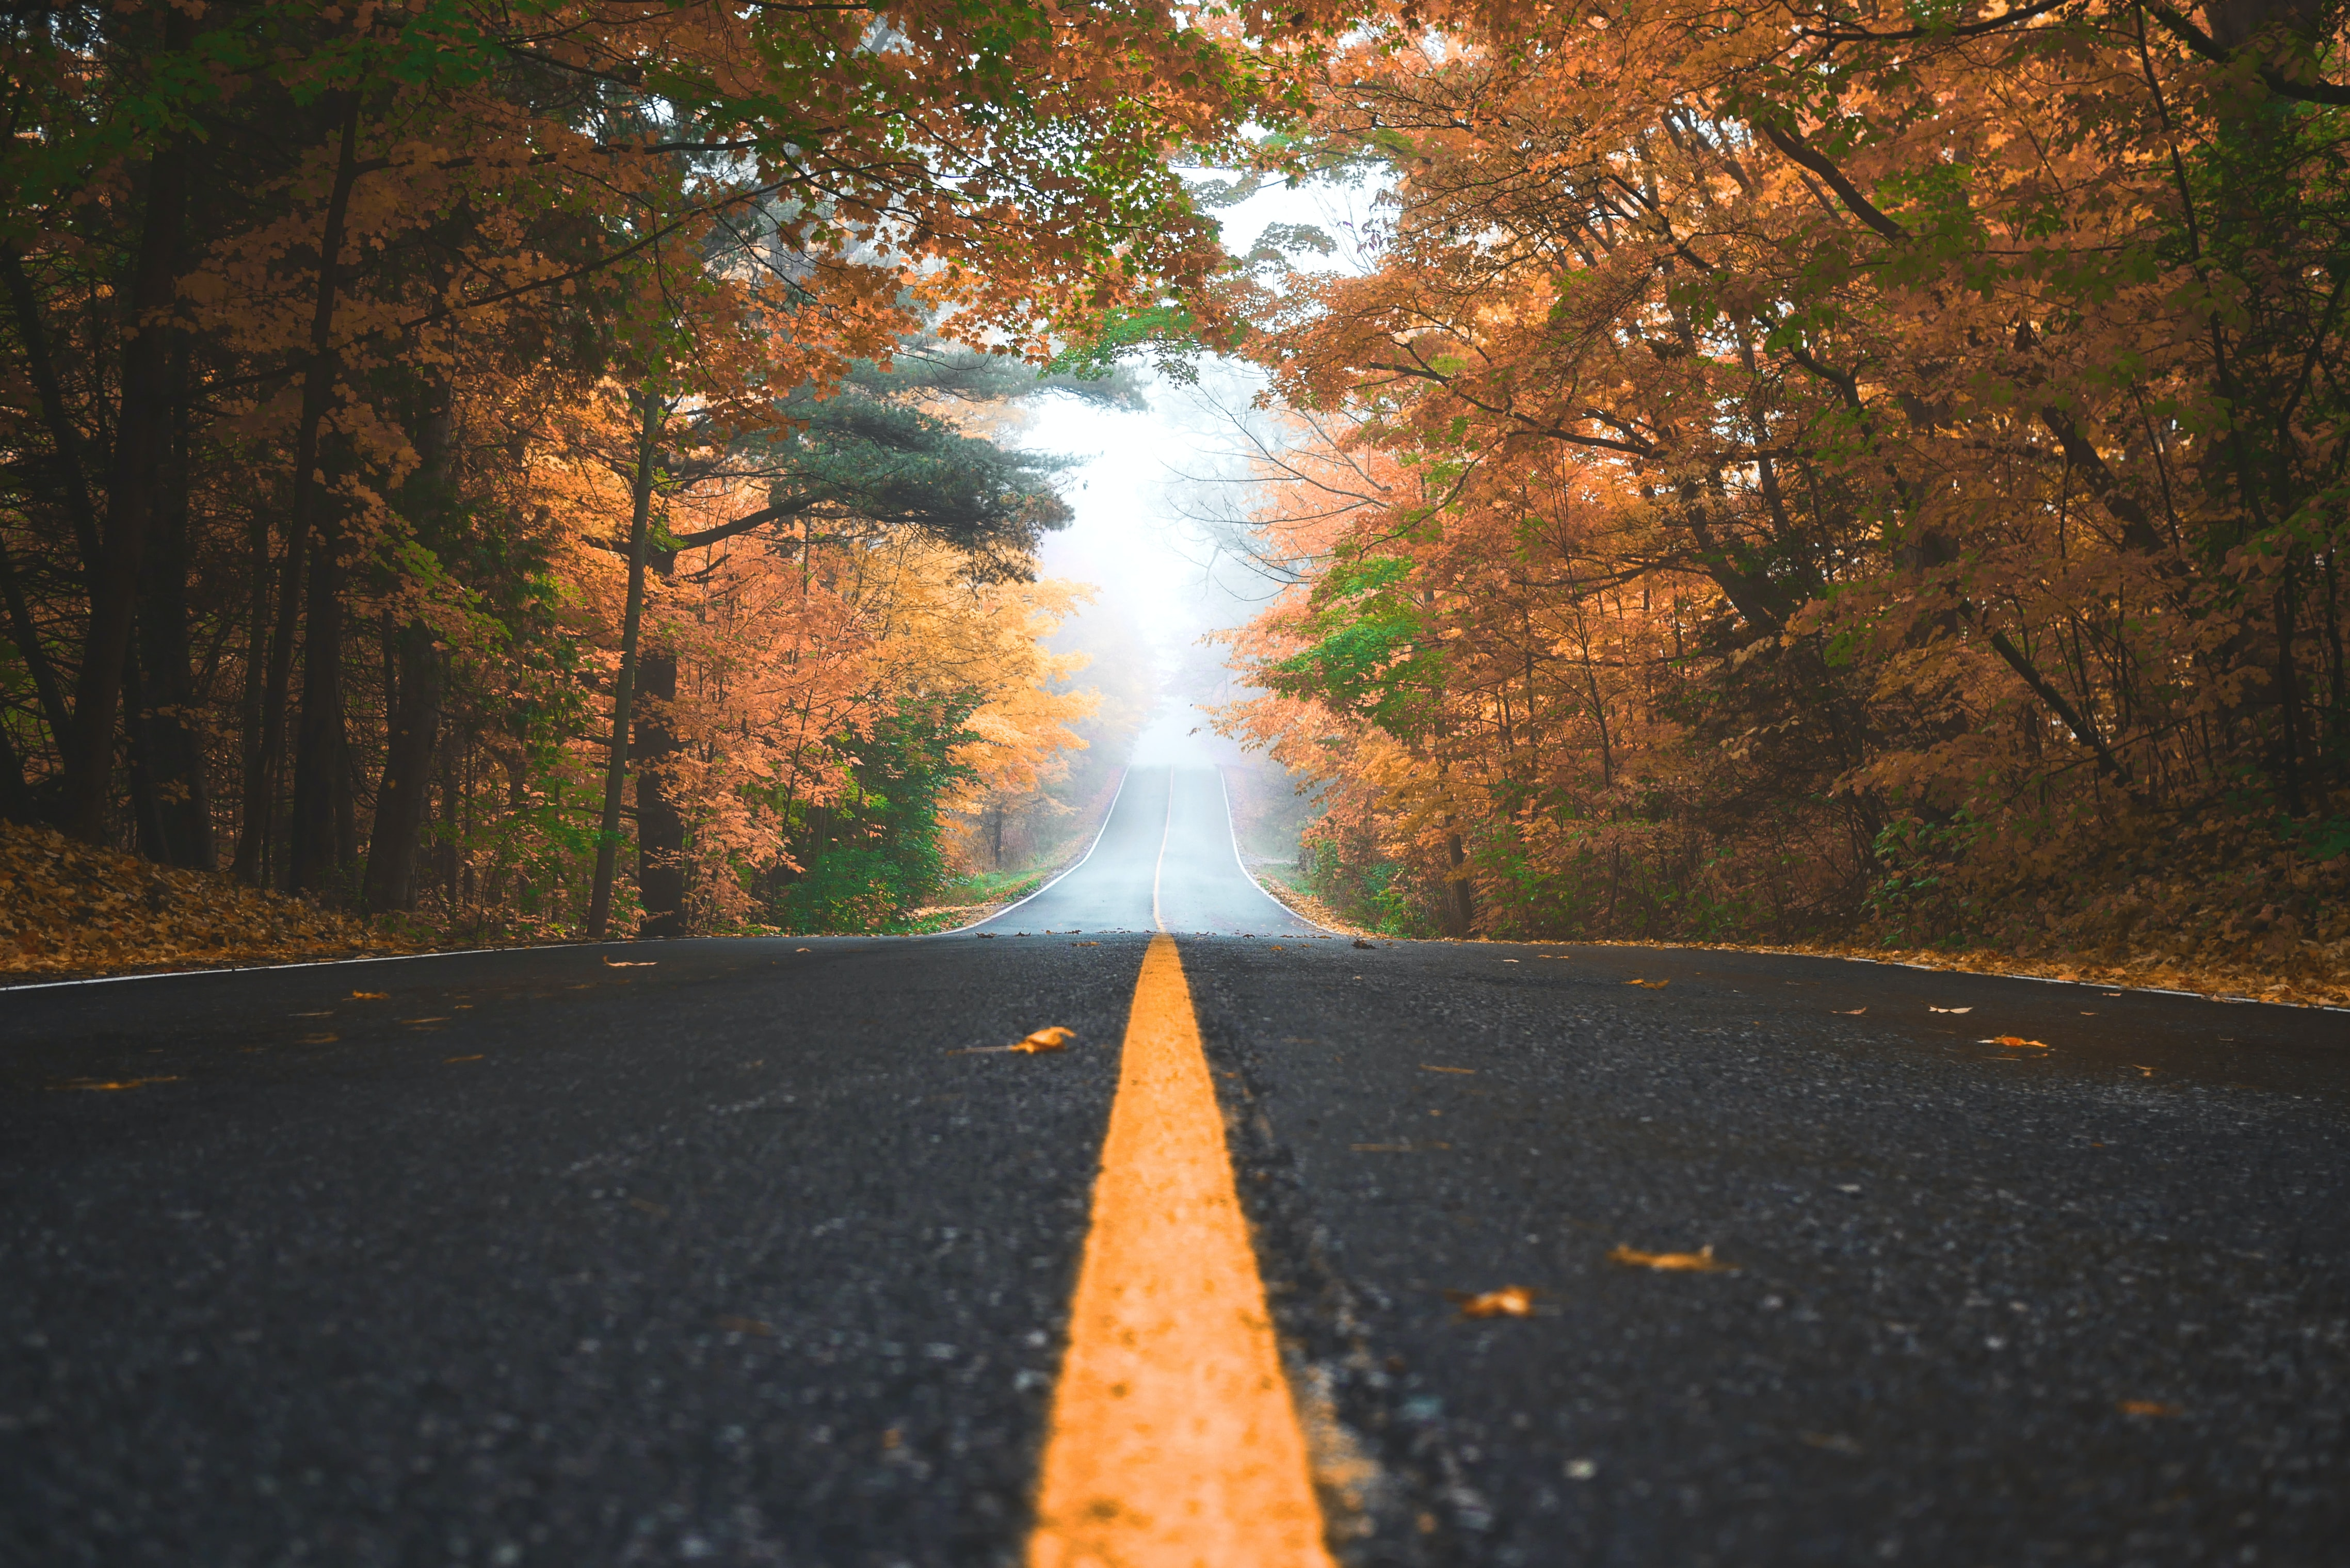 Musings of a Distracted Driver foliage stories